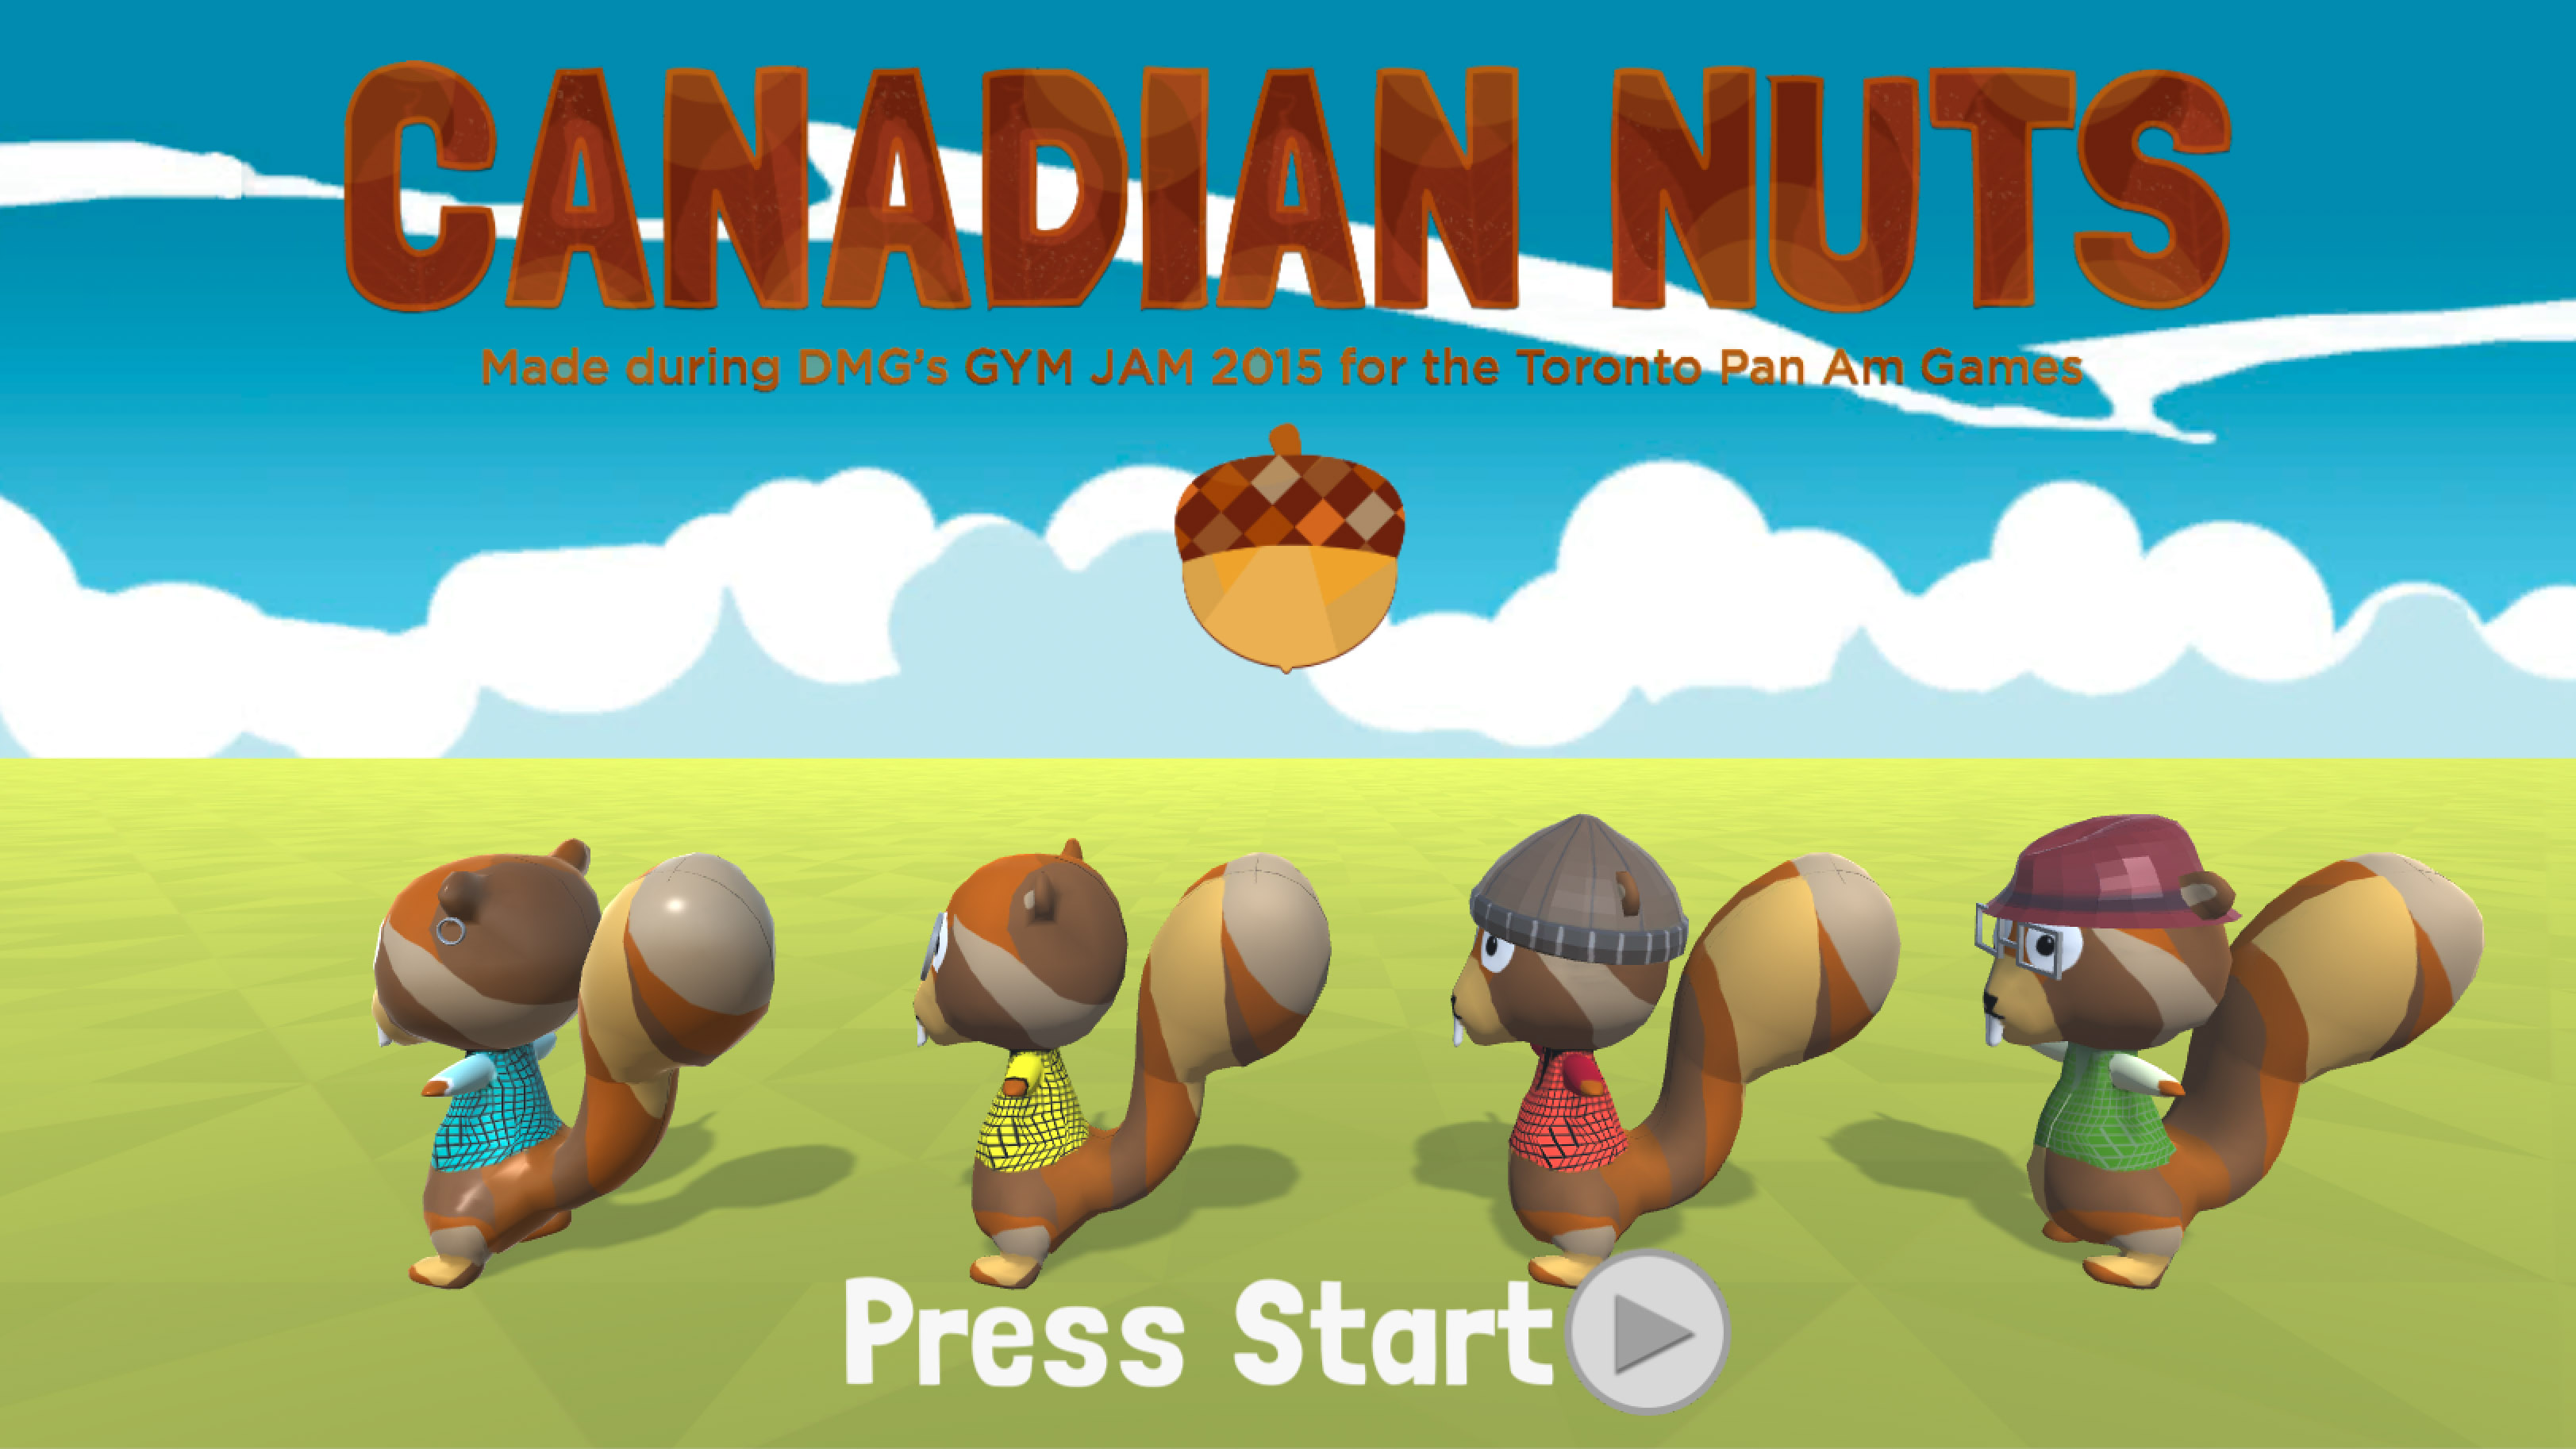 Canadian Nuts